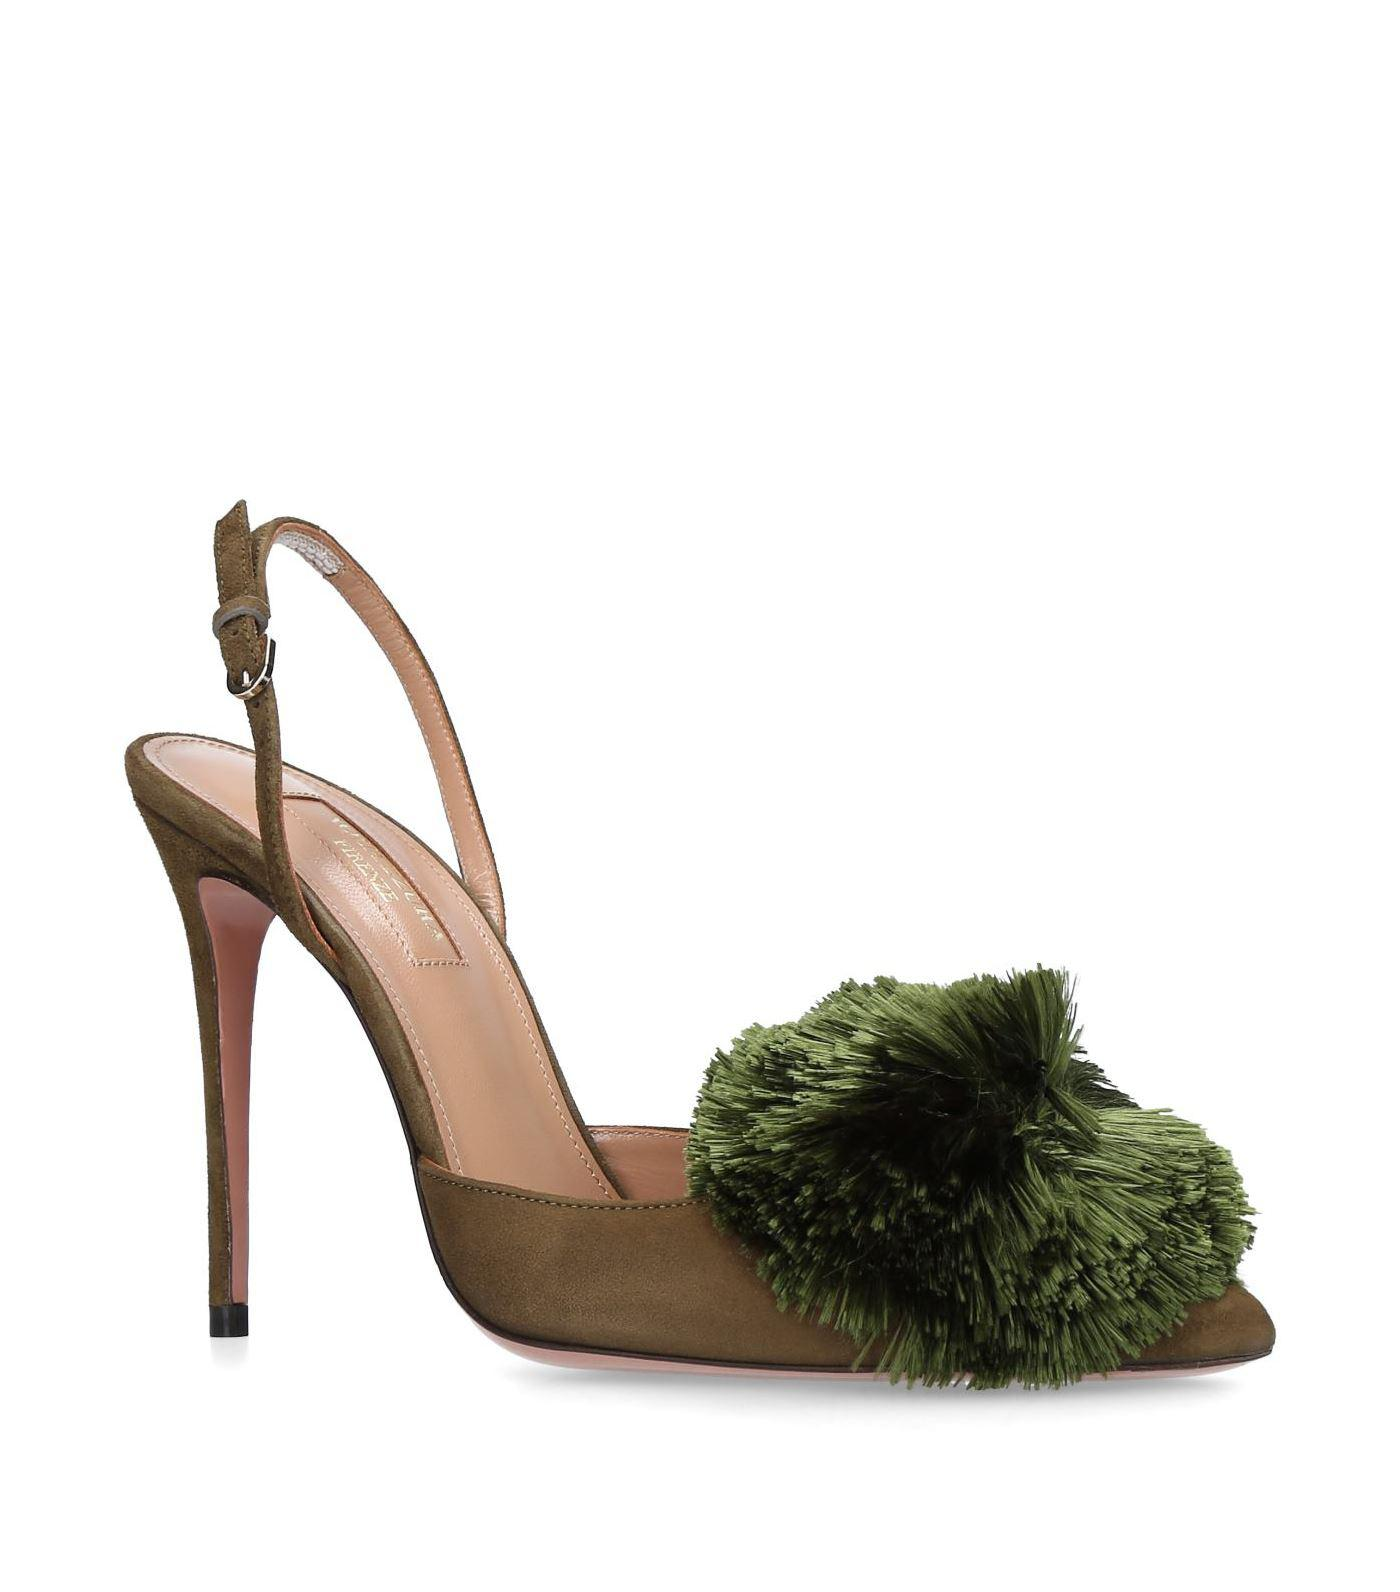 7389bdfd0 Aquazzura Powder Puff Slingback Pumps 105 in Green - Lyst